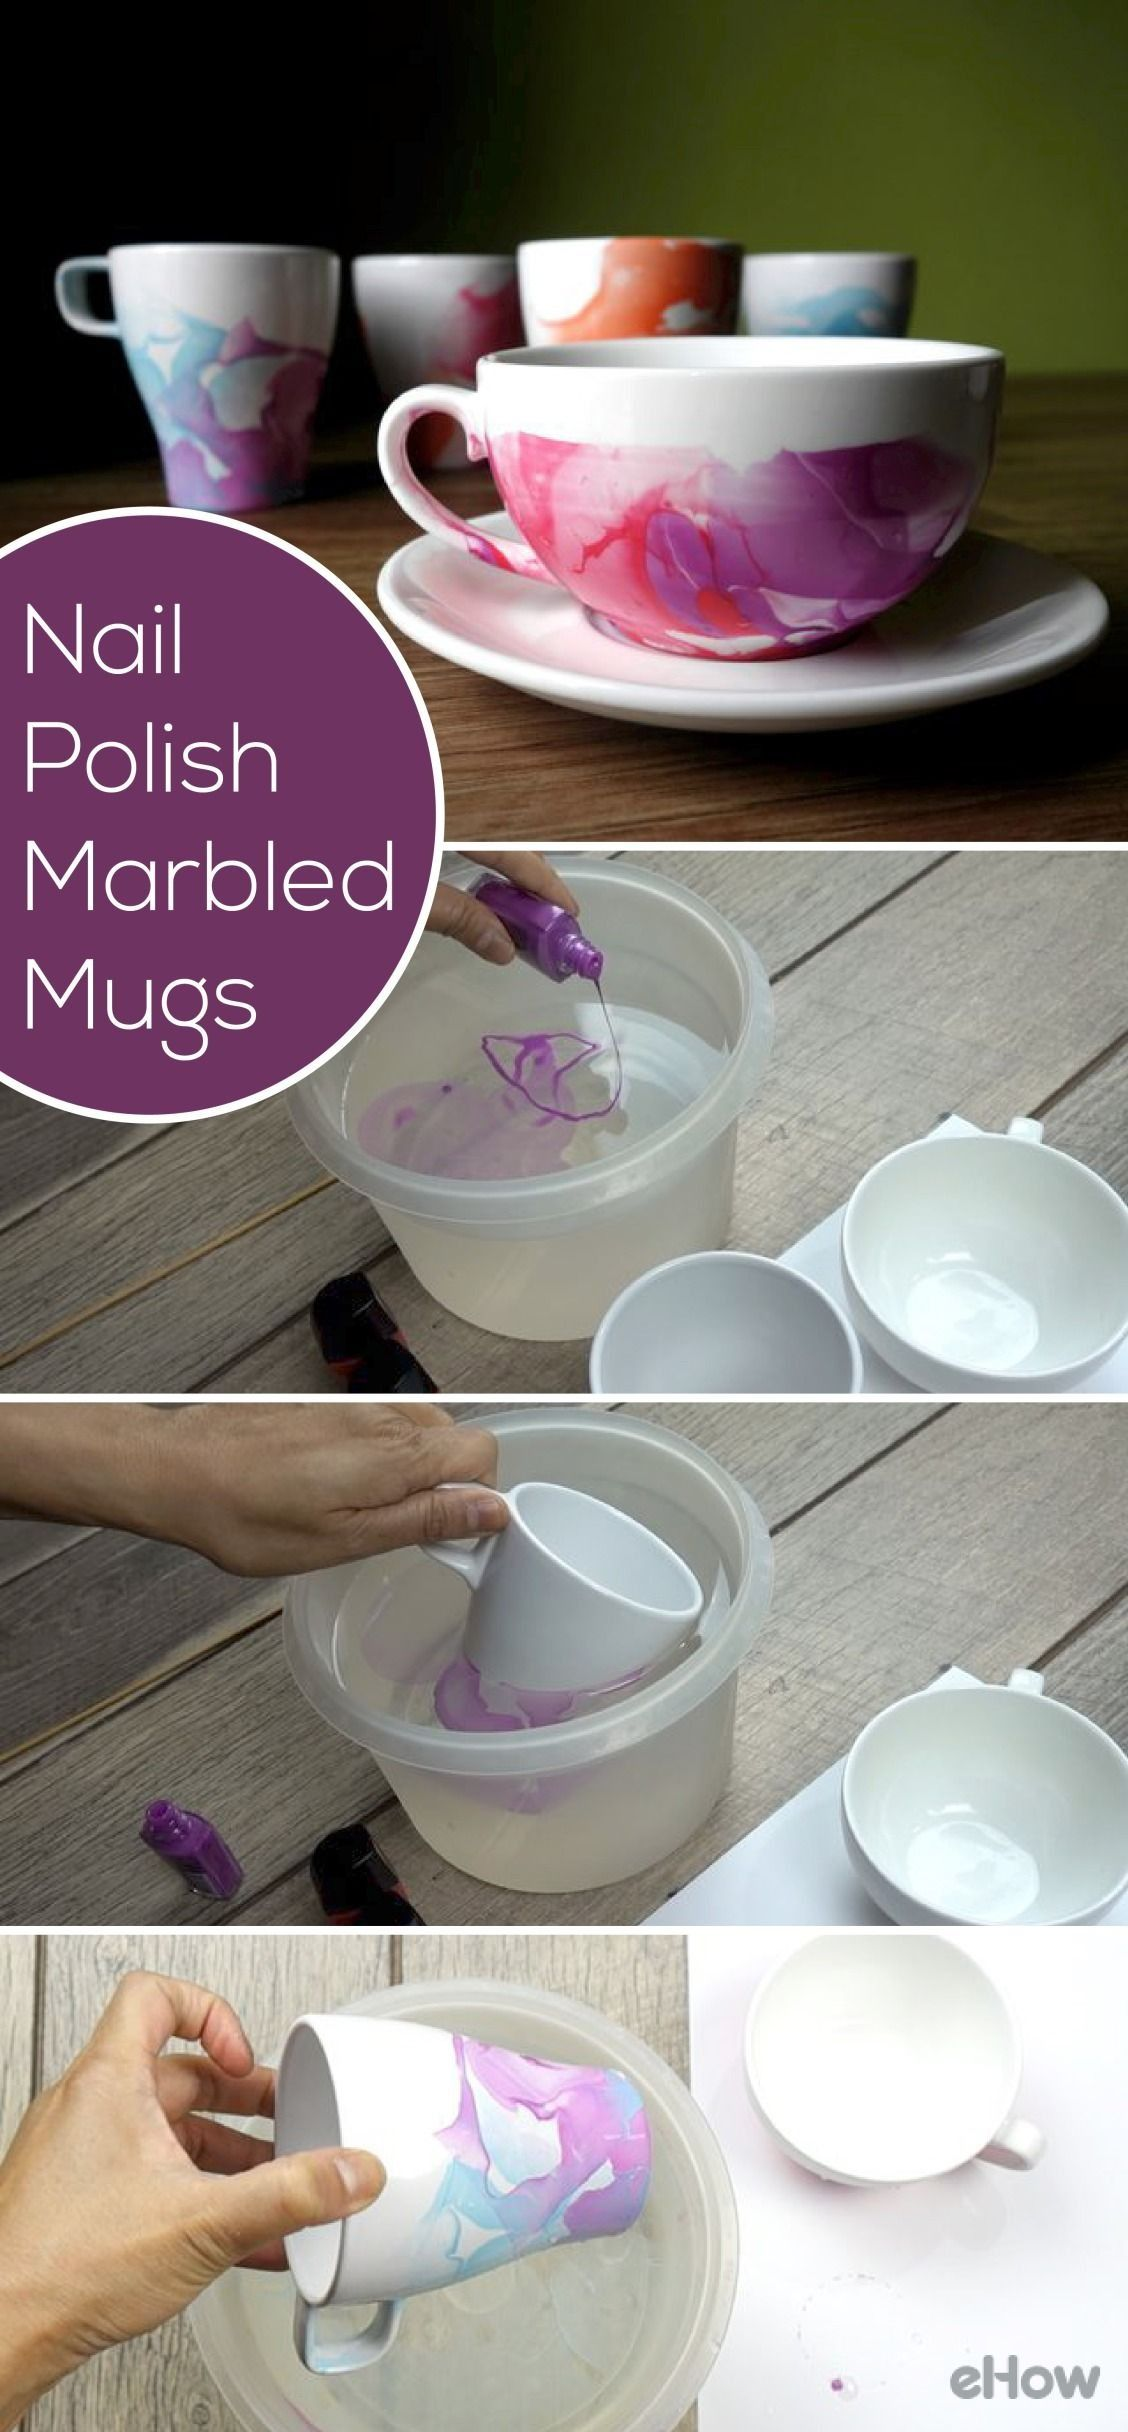 Diy nail polish marbled mugs nail polish art diy nail polish a whole new meaning to nail polish art did you know you can make marbled prinsesfo Images